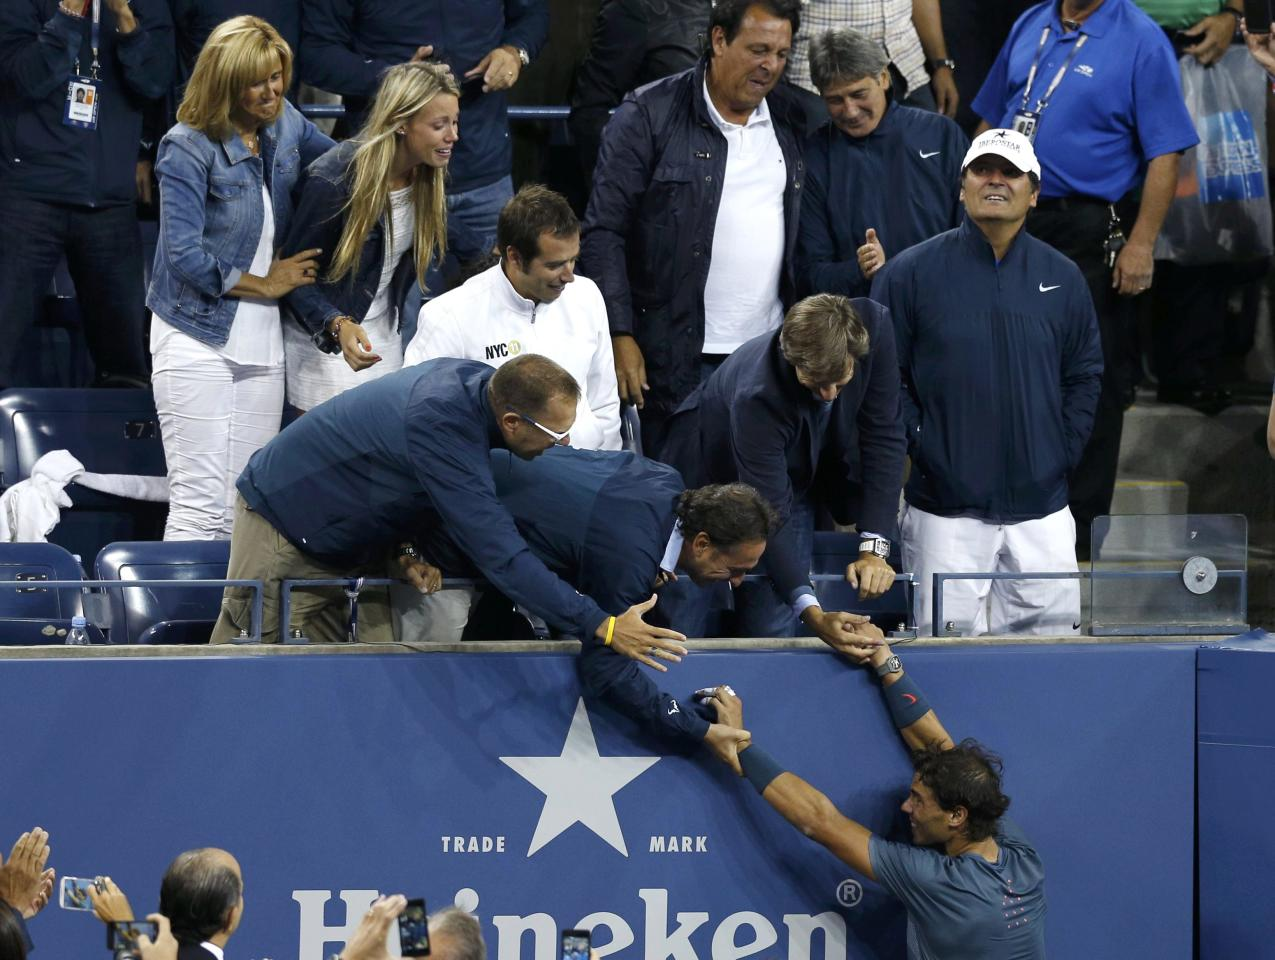 Rafael Nadal of Spain greets friends and family in the stands as he celebrates after defeating Novak Djokovic of Serbia in their men's final match at the U.S. Open tennis championships in New York, September 9, 2013. REUTERS/Adam Hunger (UNITED STATES - Tags: SPORT TENNIS)